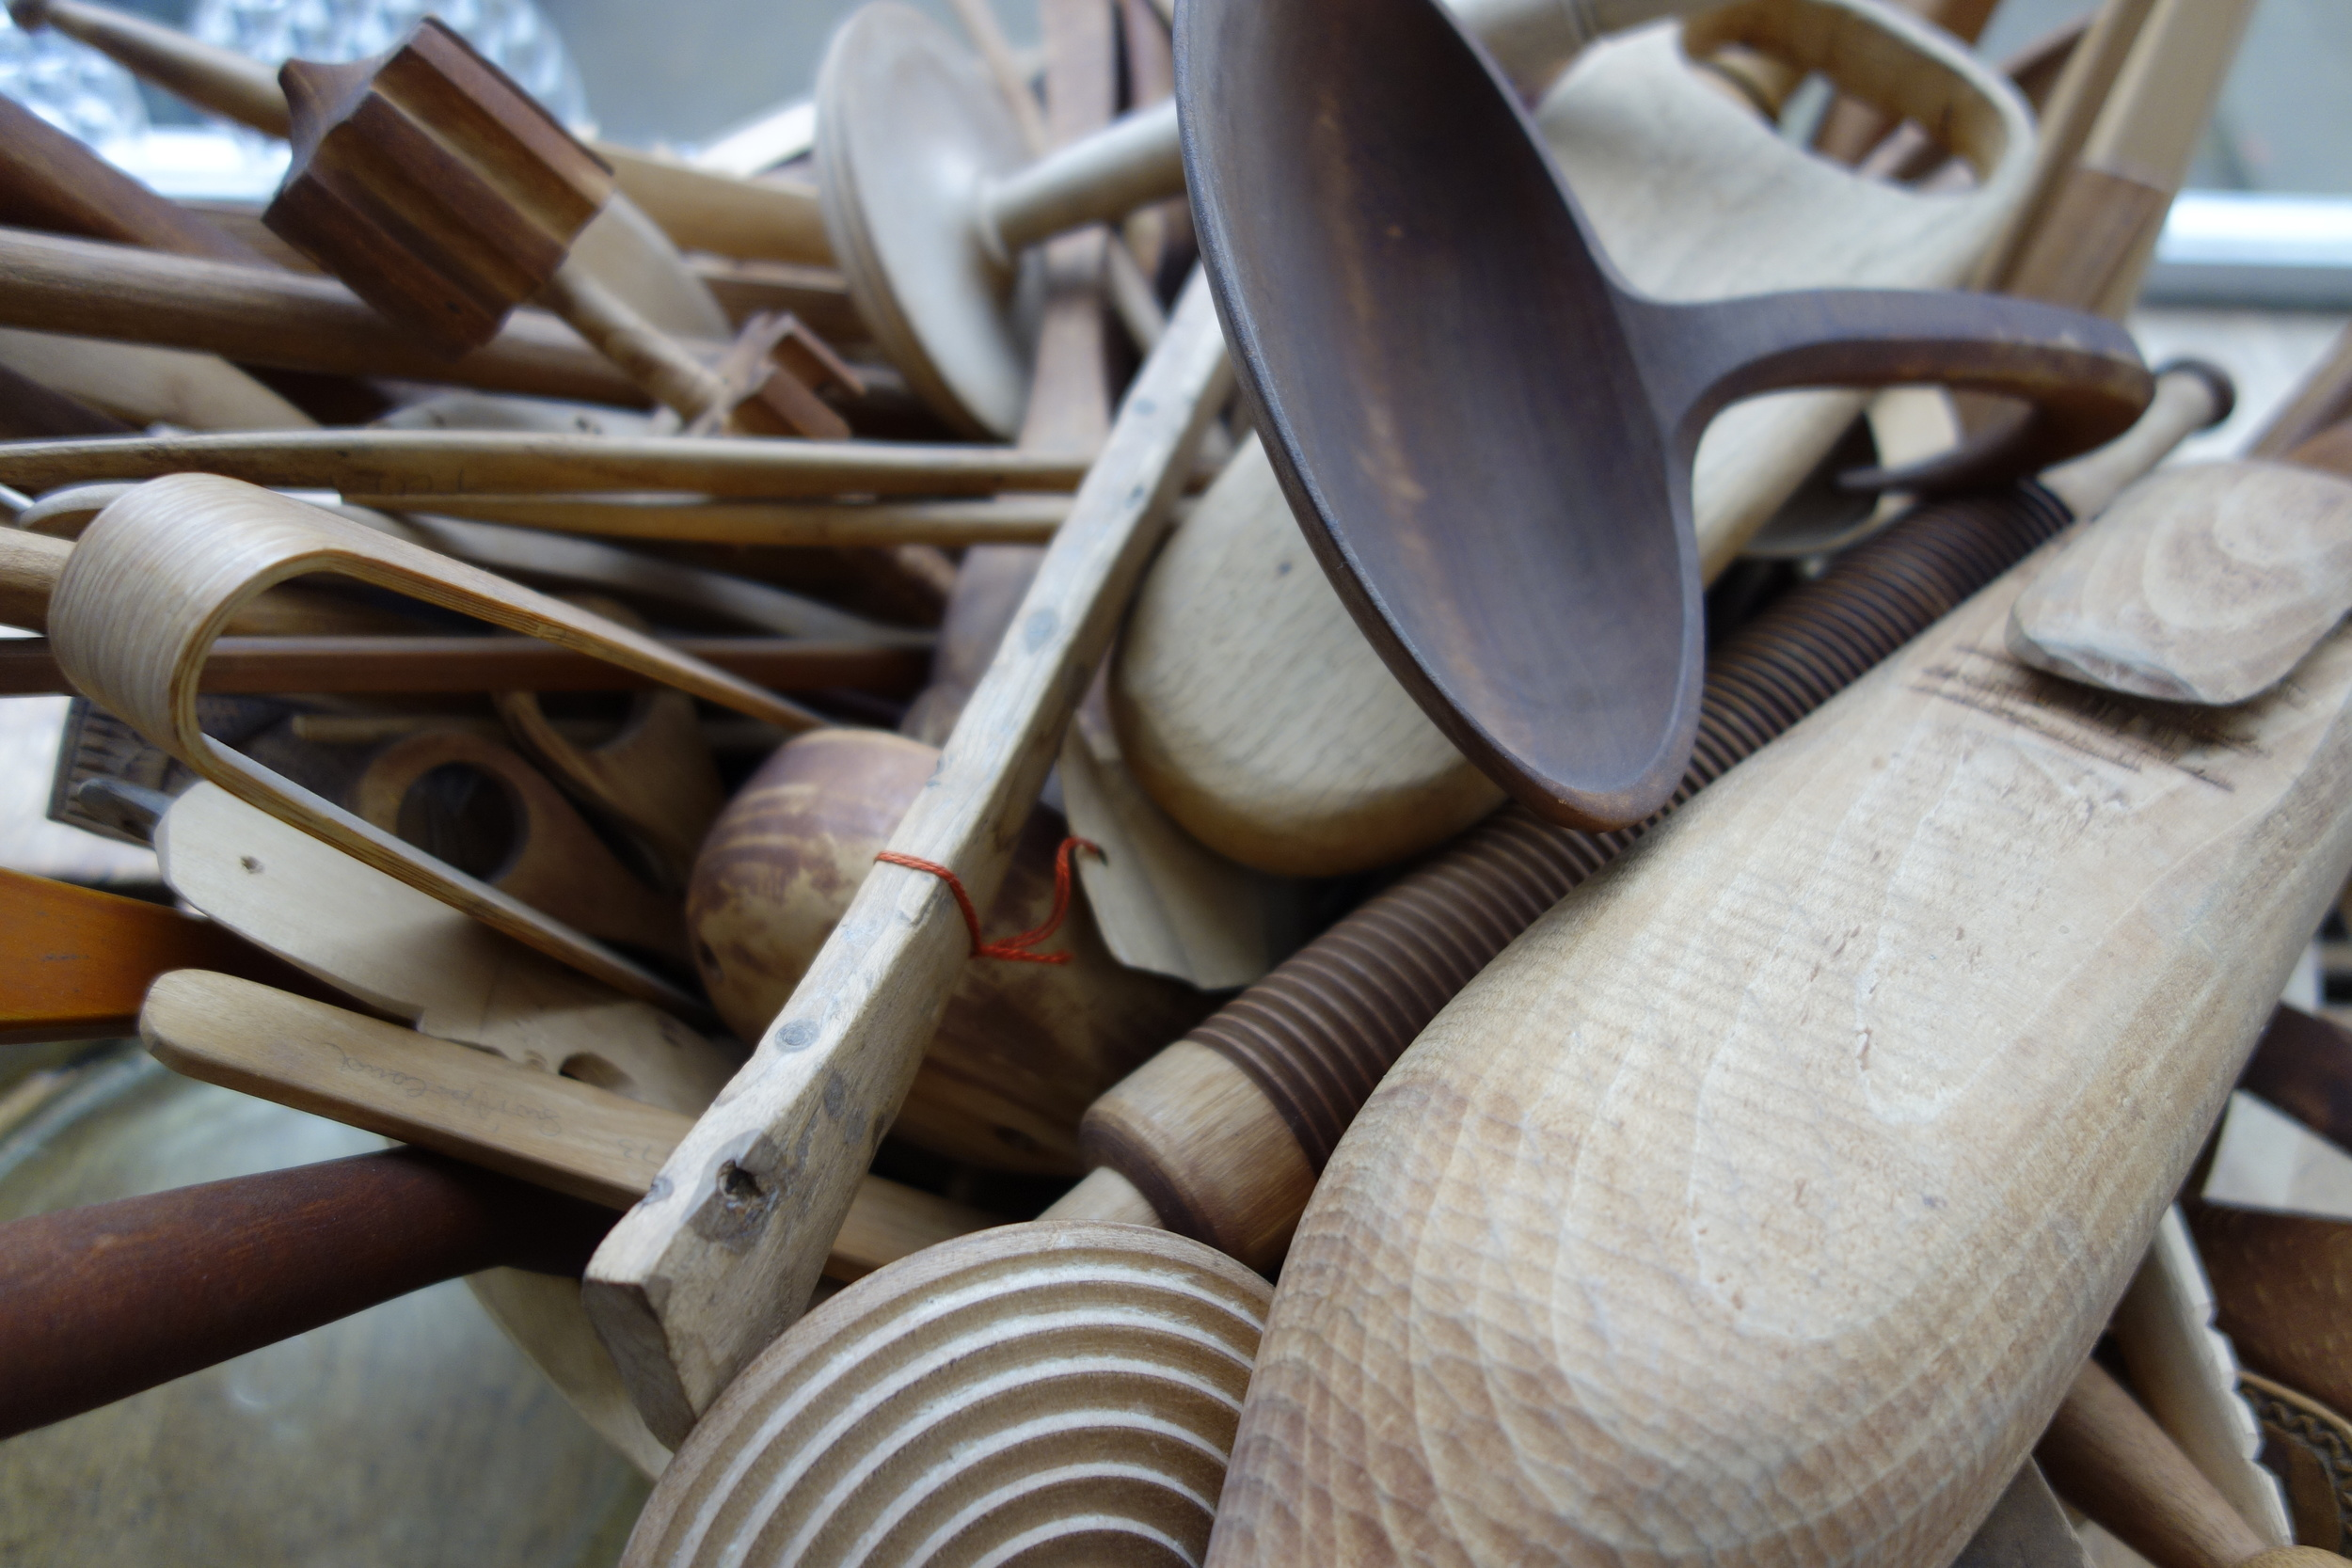 2 WILLOW ROAD WOODEN TOOLS DETAIL